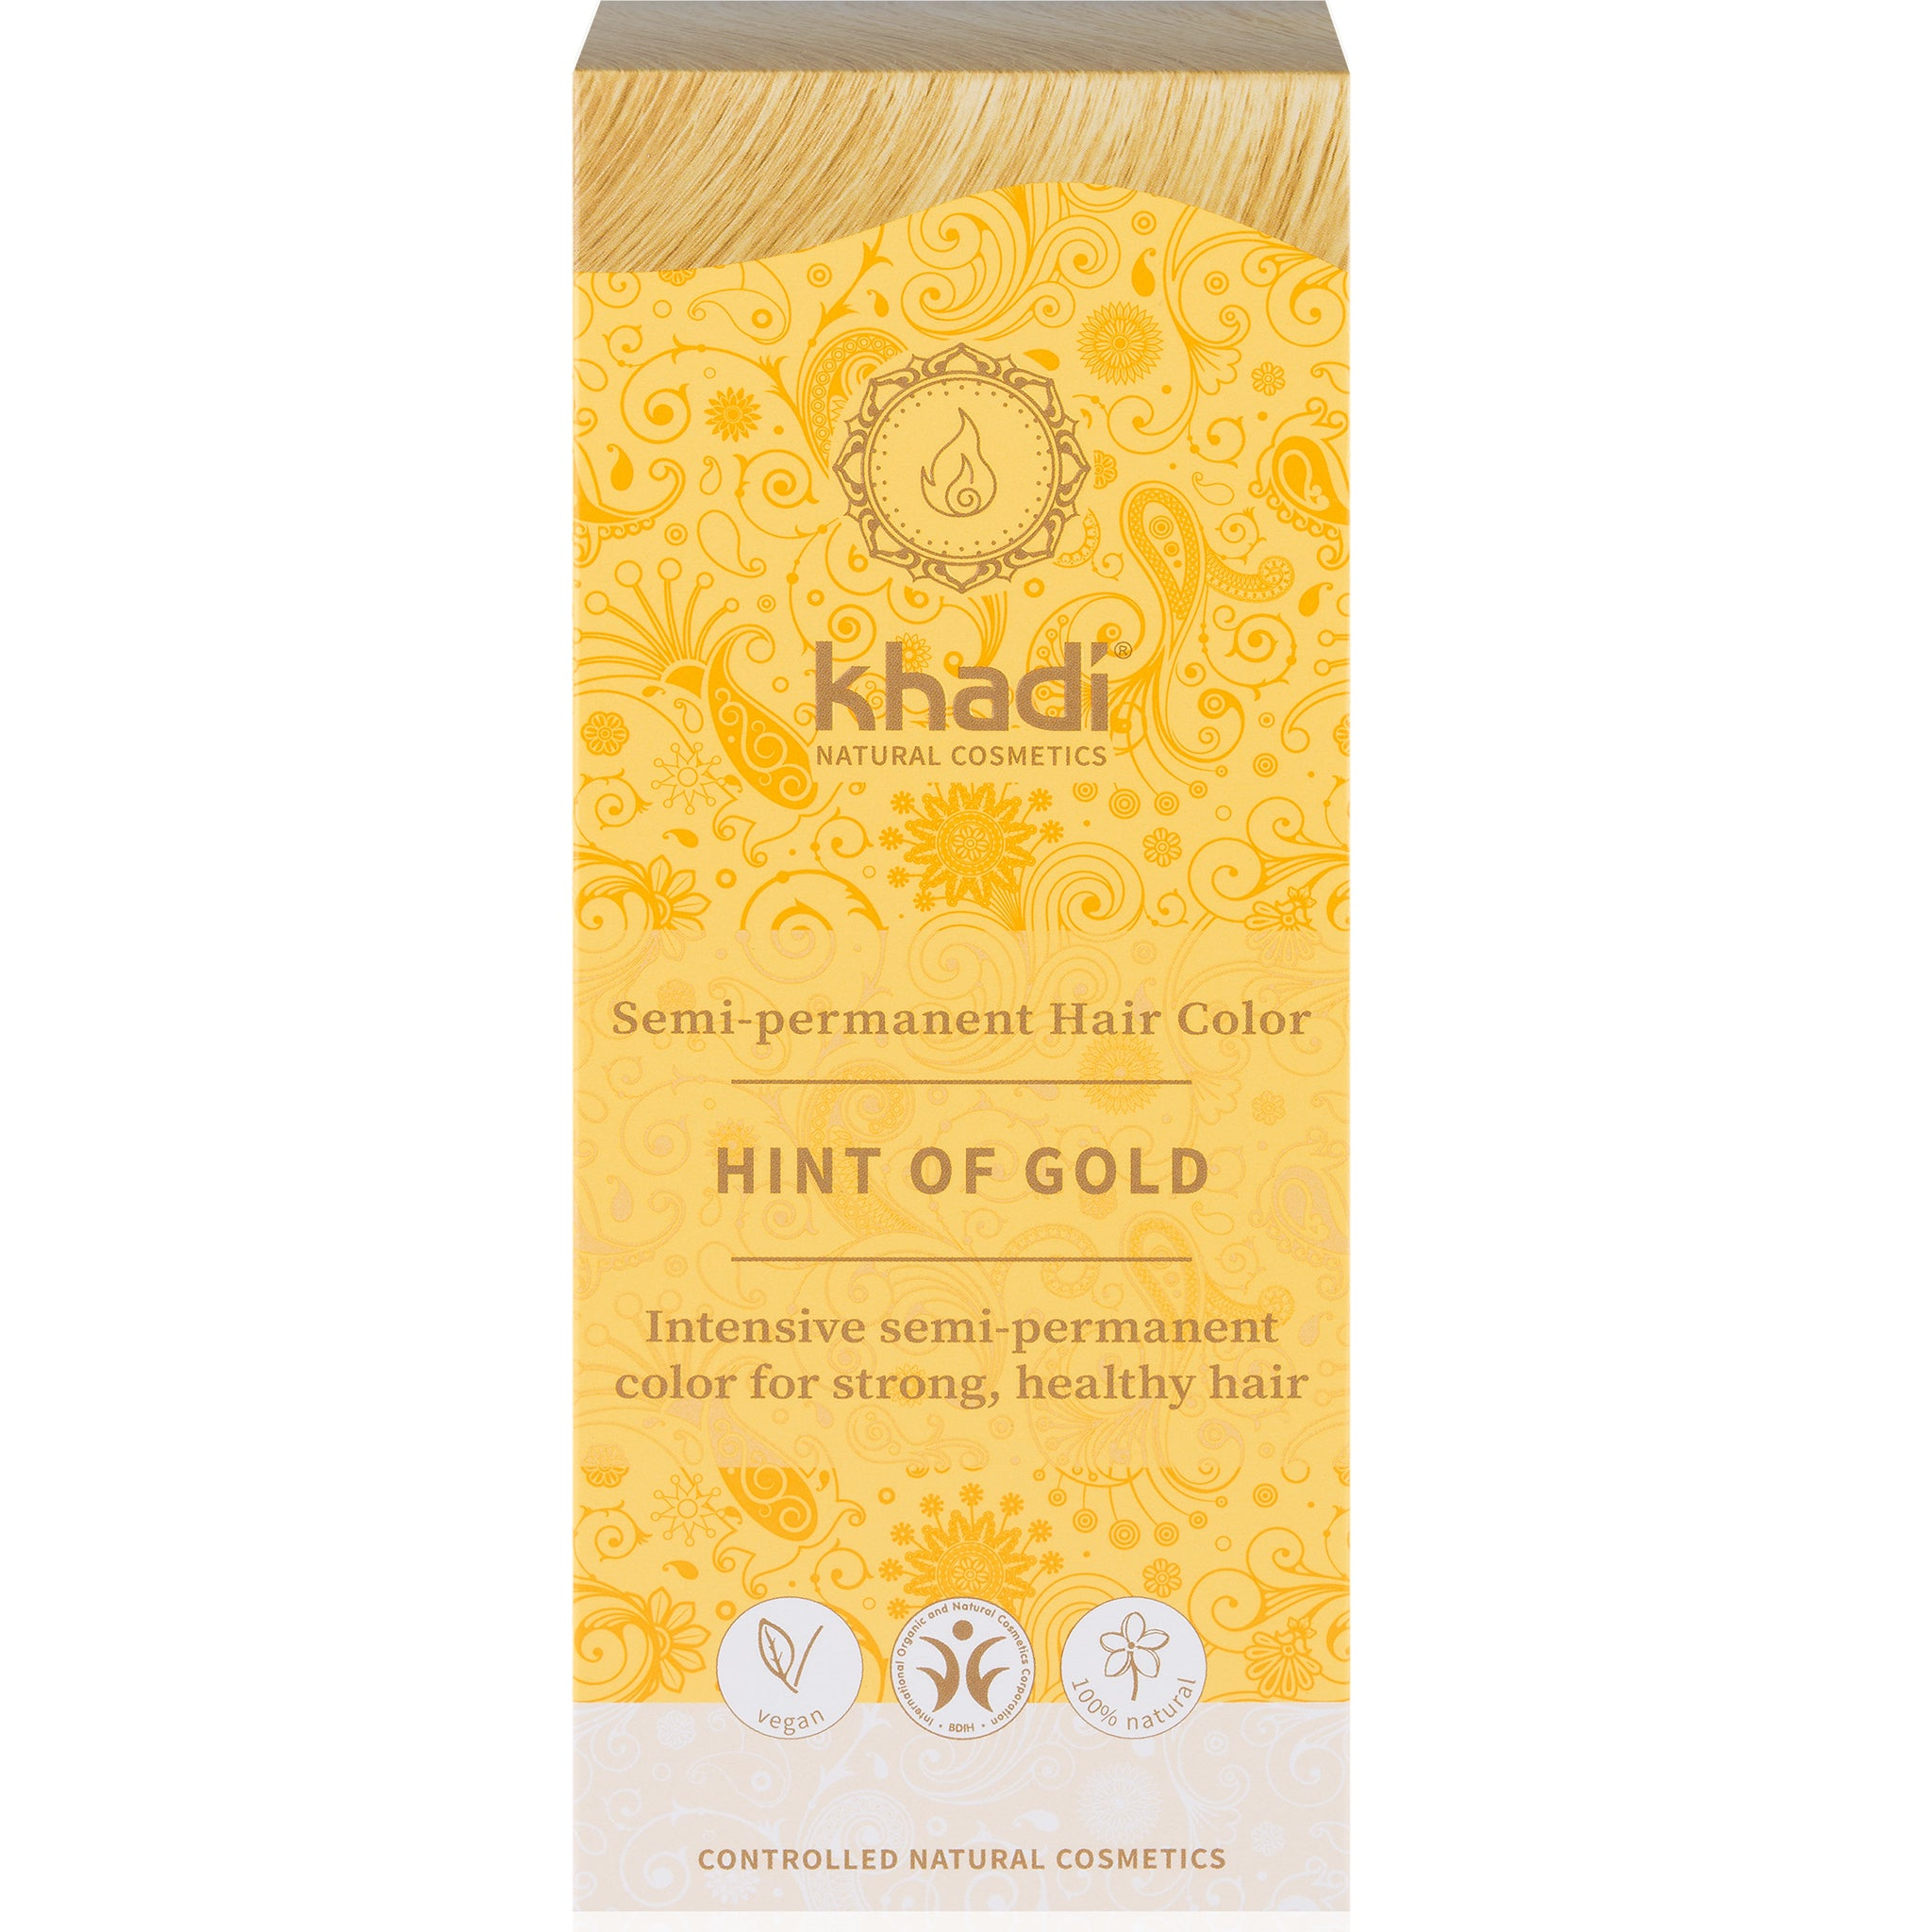 Herbal Hair Colour Blonde - Hints of Gold